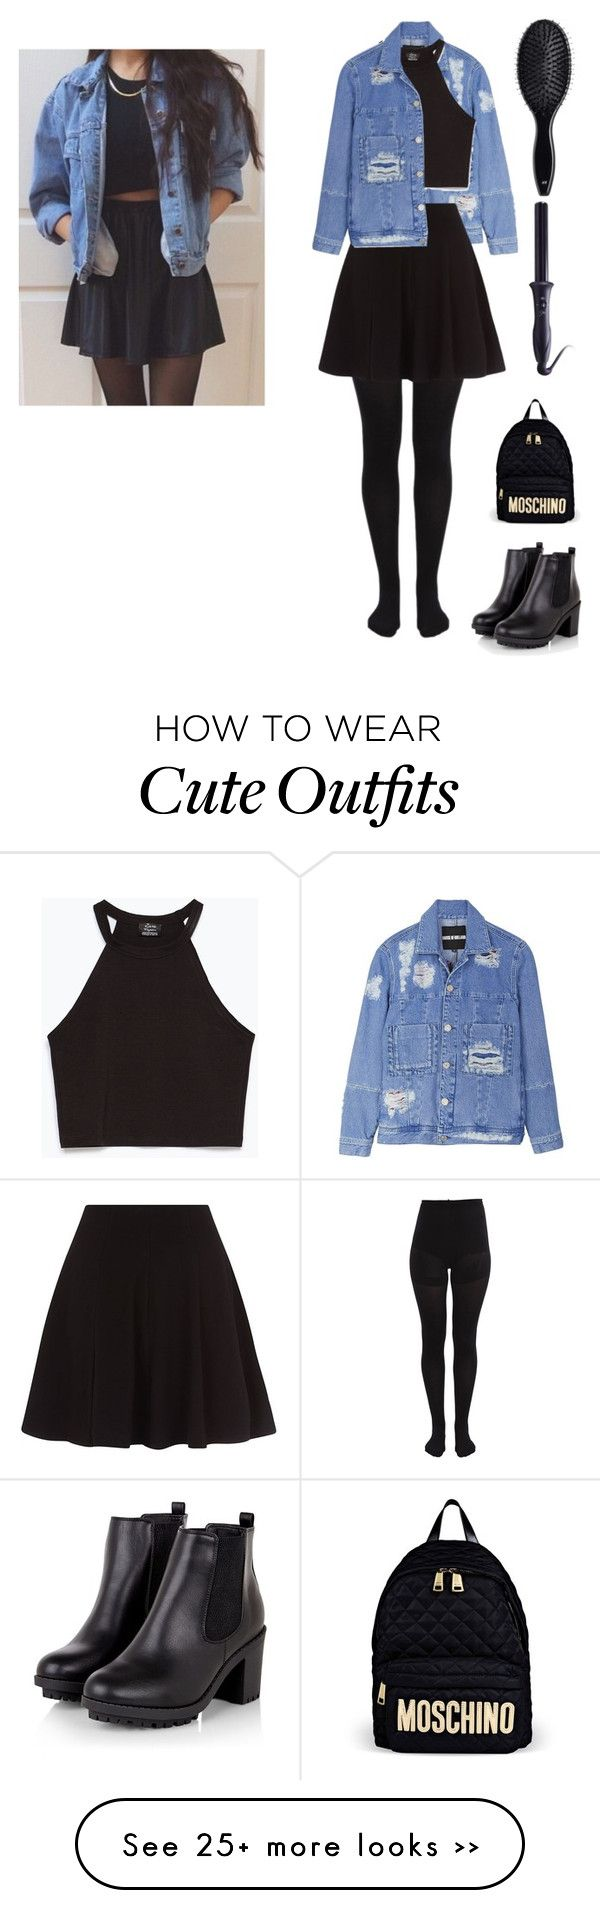 """matching"" by fashionbloggerxxx on Polyvore featuring House of Holland, Pieces, Zara, Moschino, Sultra and H&M"